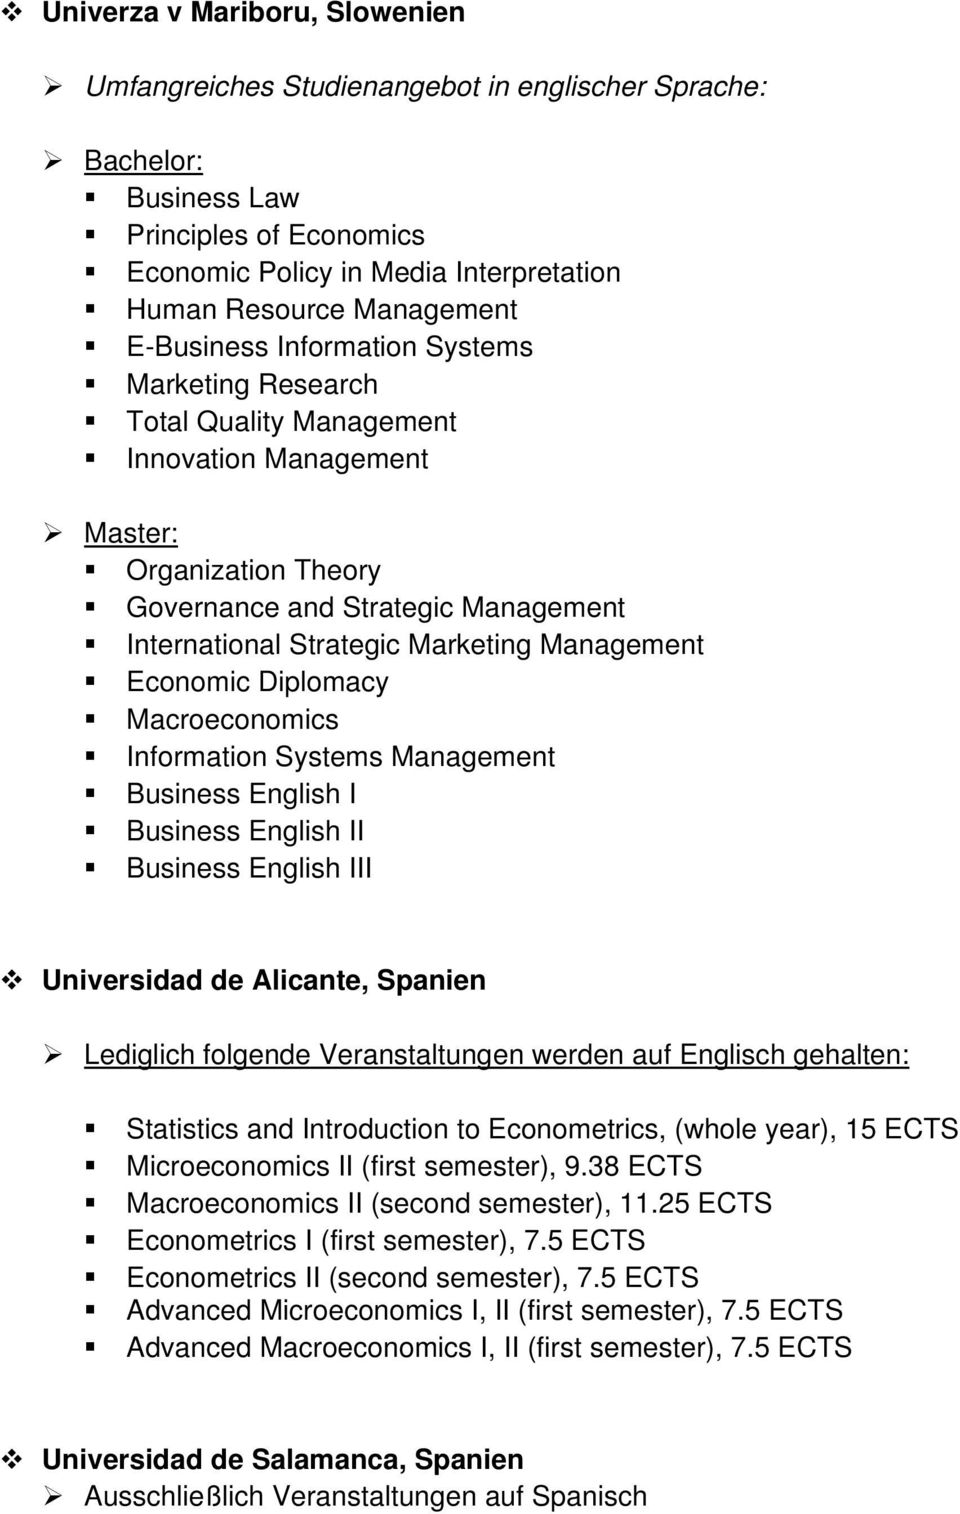 Business English I Business English II Business English III Universidad de Alicante, Spanien Statistics and Introduction to Econometrics, (whole year), 15 ECTS Microeconomics II (first semester), 9.